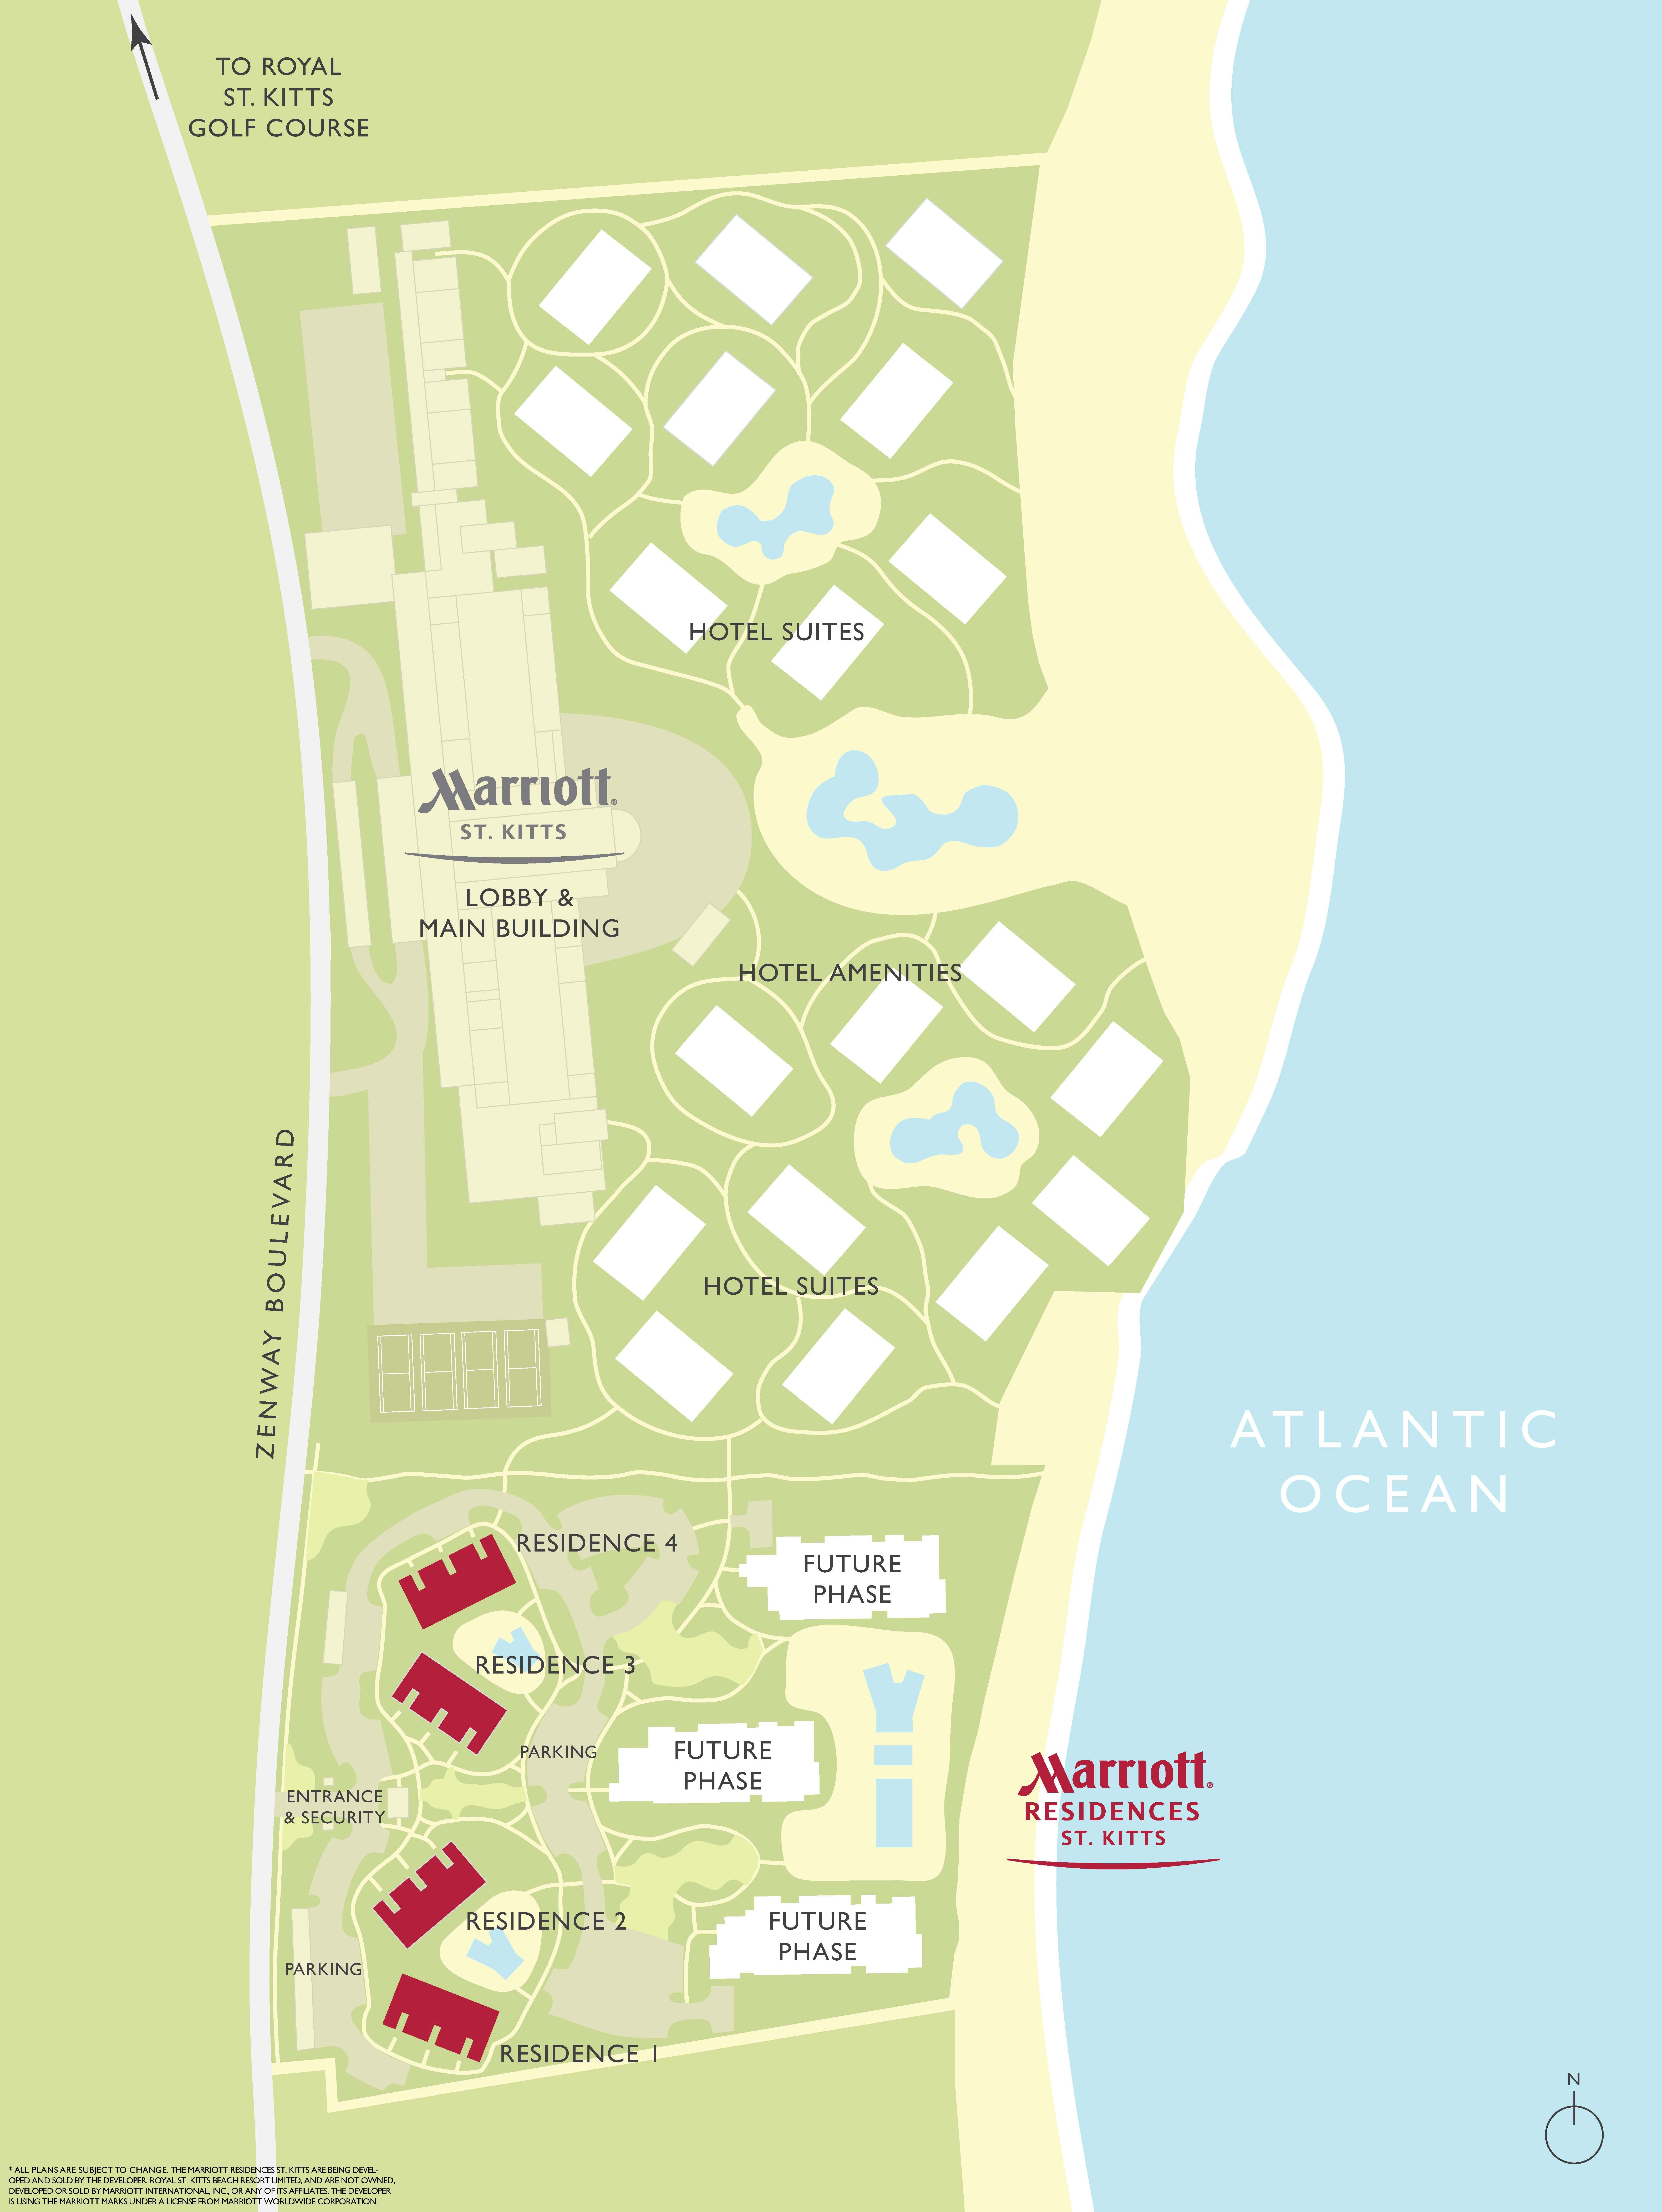 Marriott St Kitts Resort and Residences Plan – Site Plans Are Developed Using An